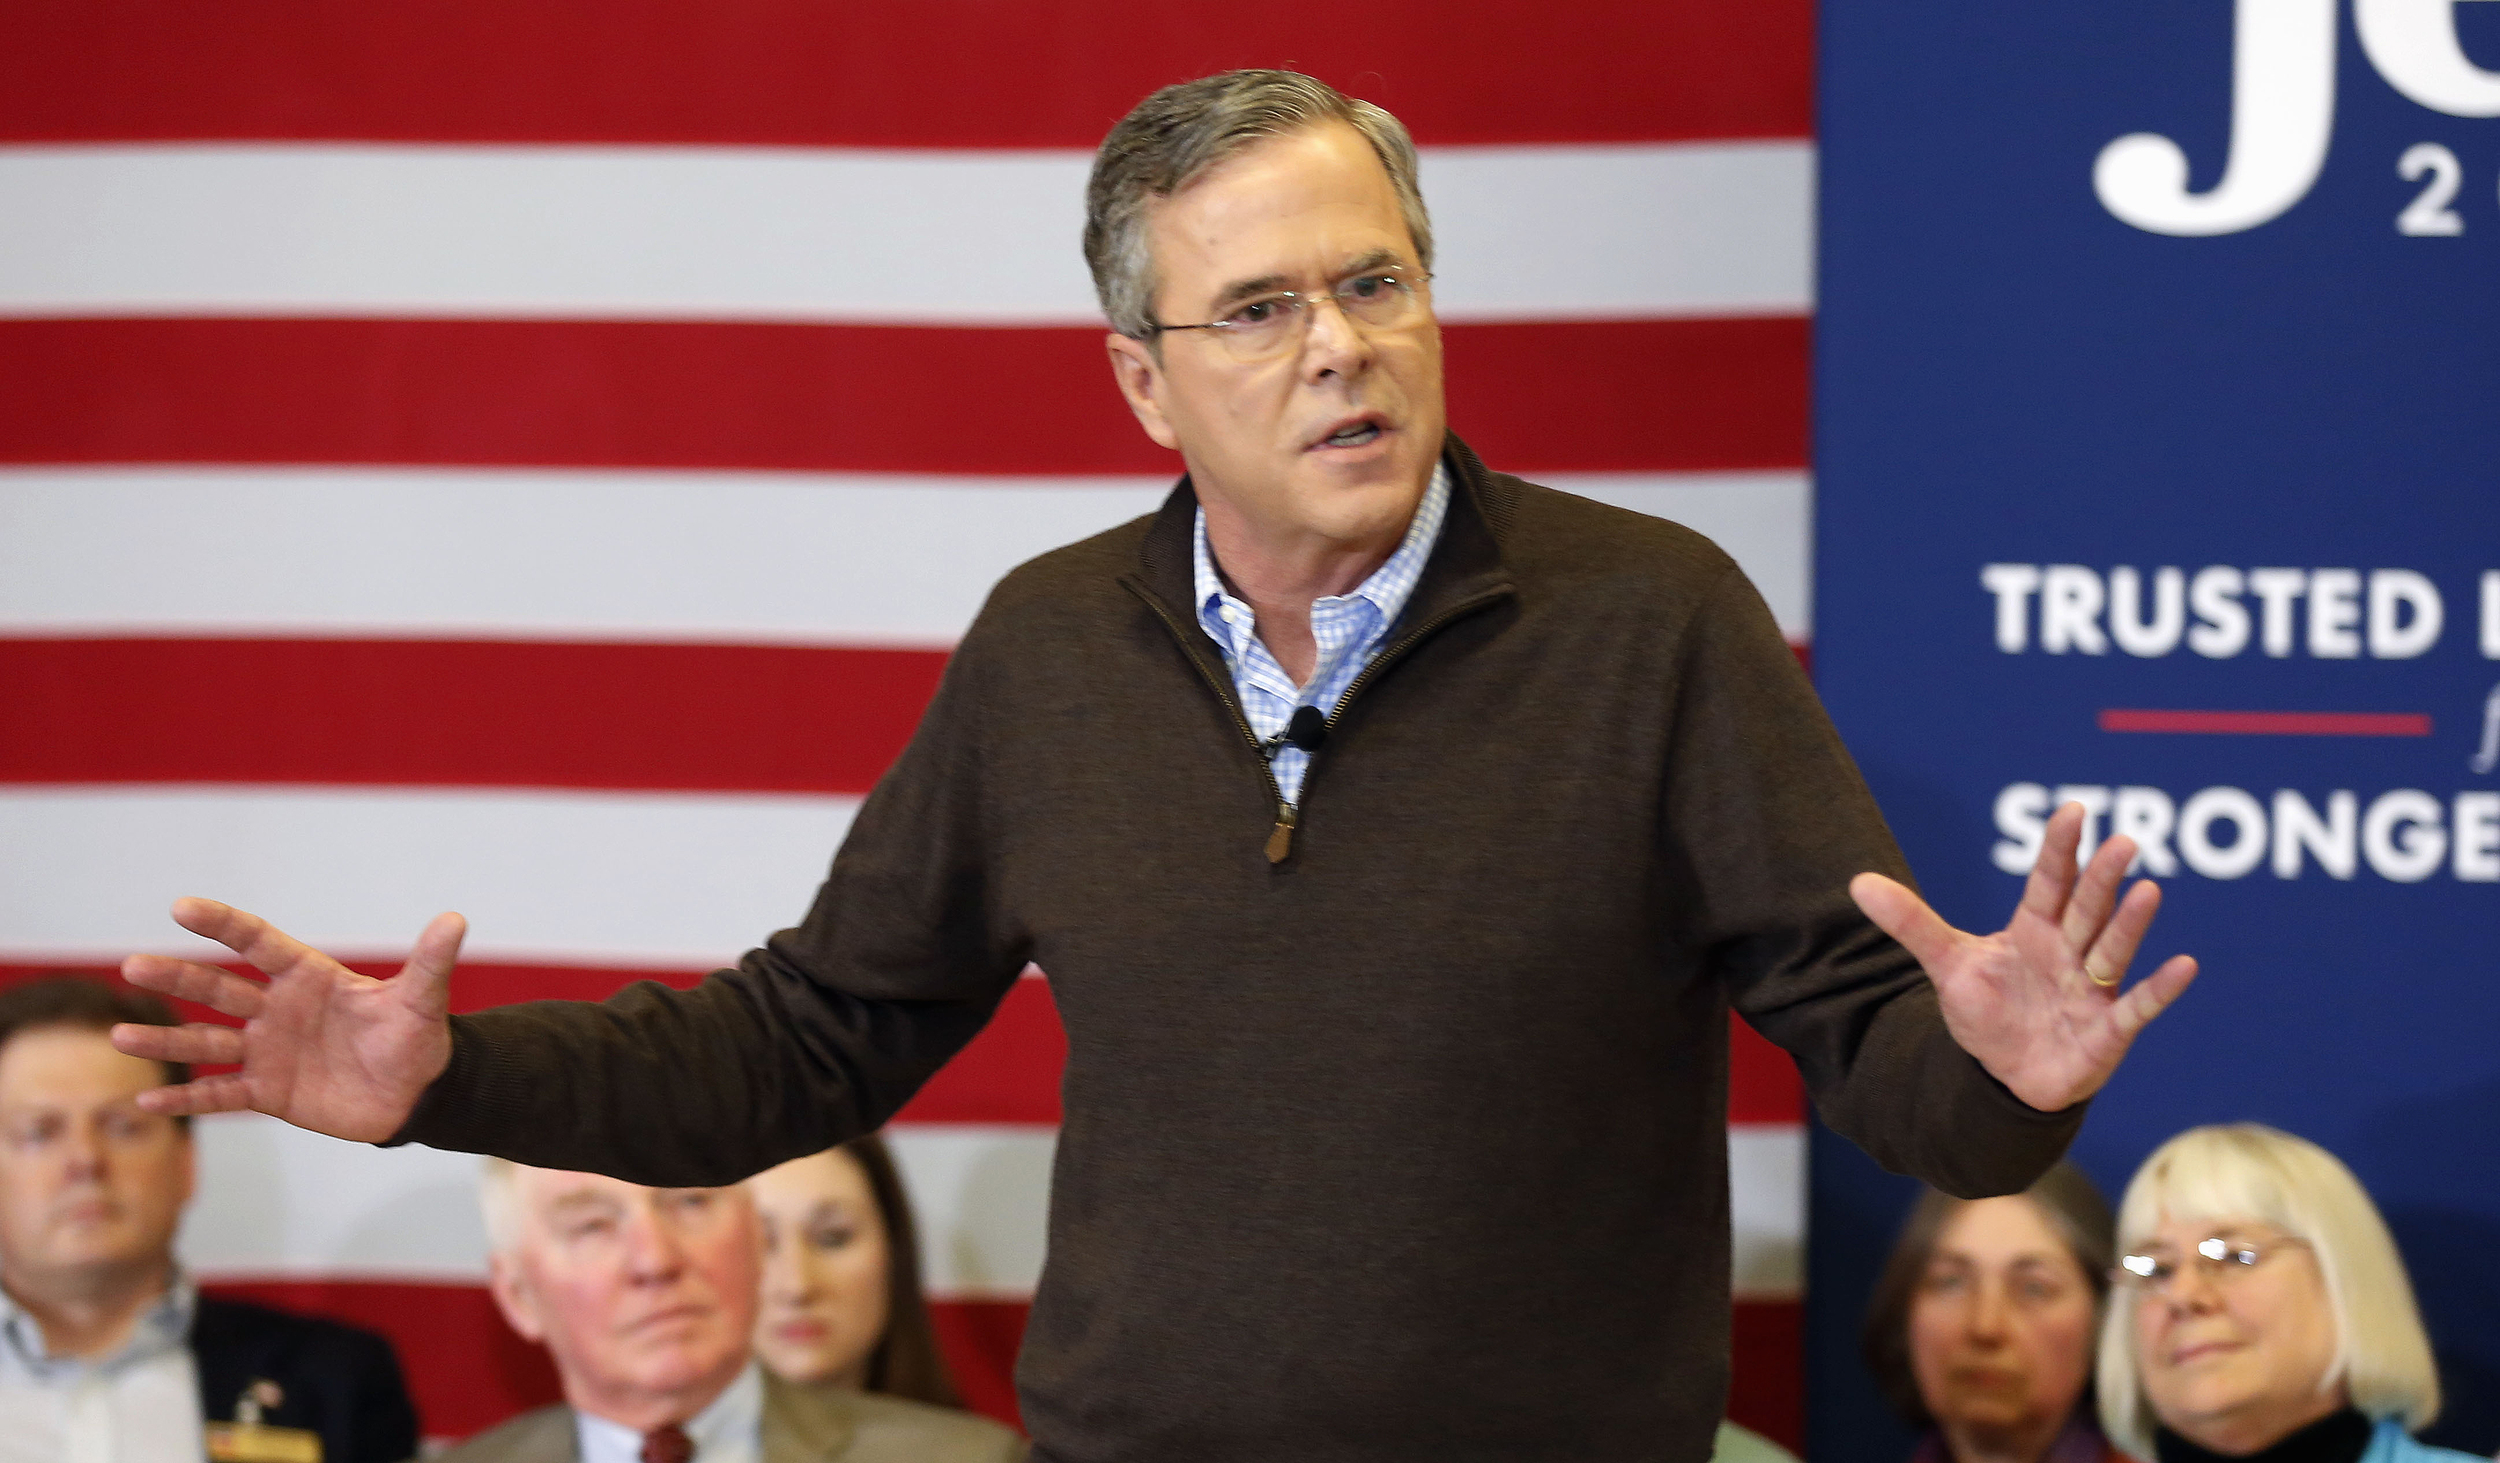 Republican presidential candidate, former Florida Gov. Jeb Bush speaks during a campaign stop at Souhegan High School, Saturday, Jan. 16, 2016, in Amherst, NH. (Jim Cole/AP)